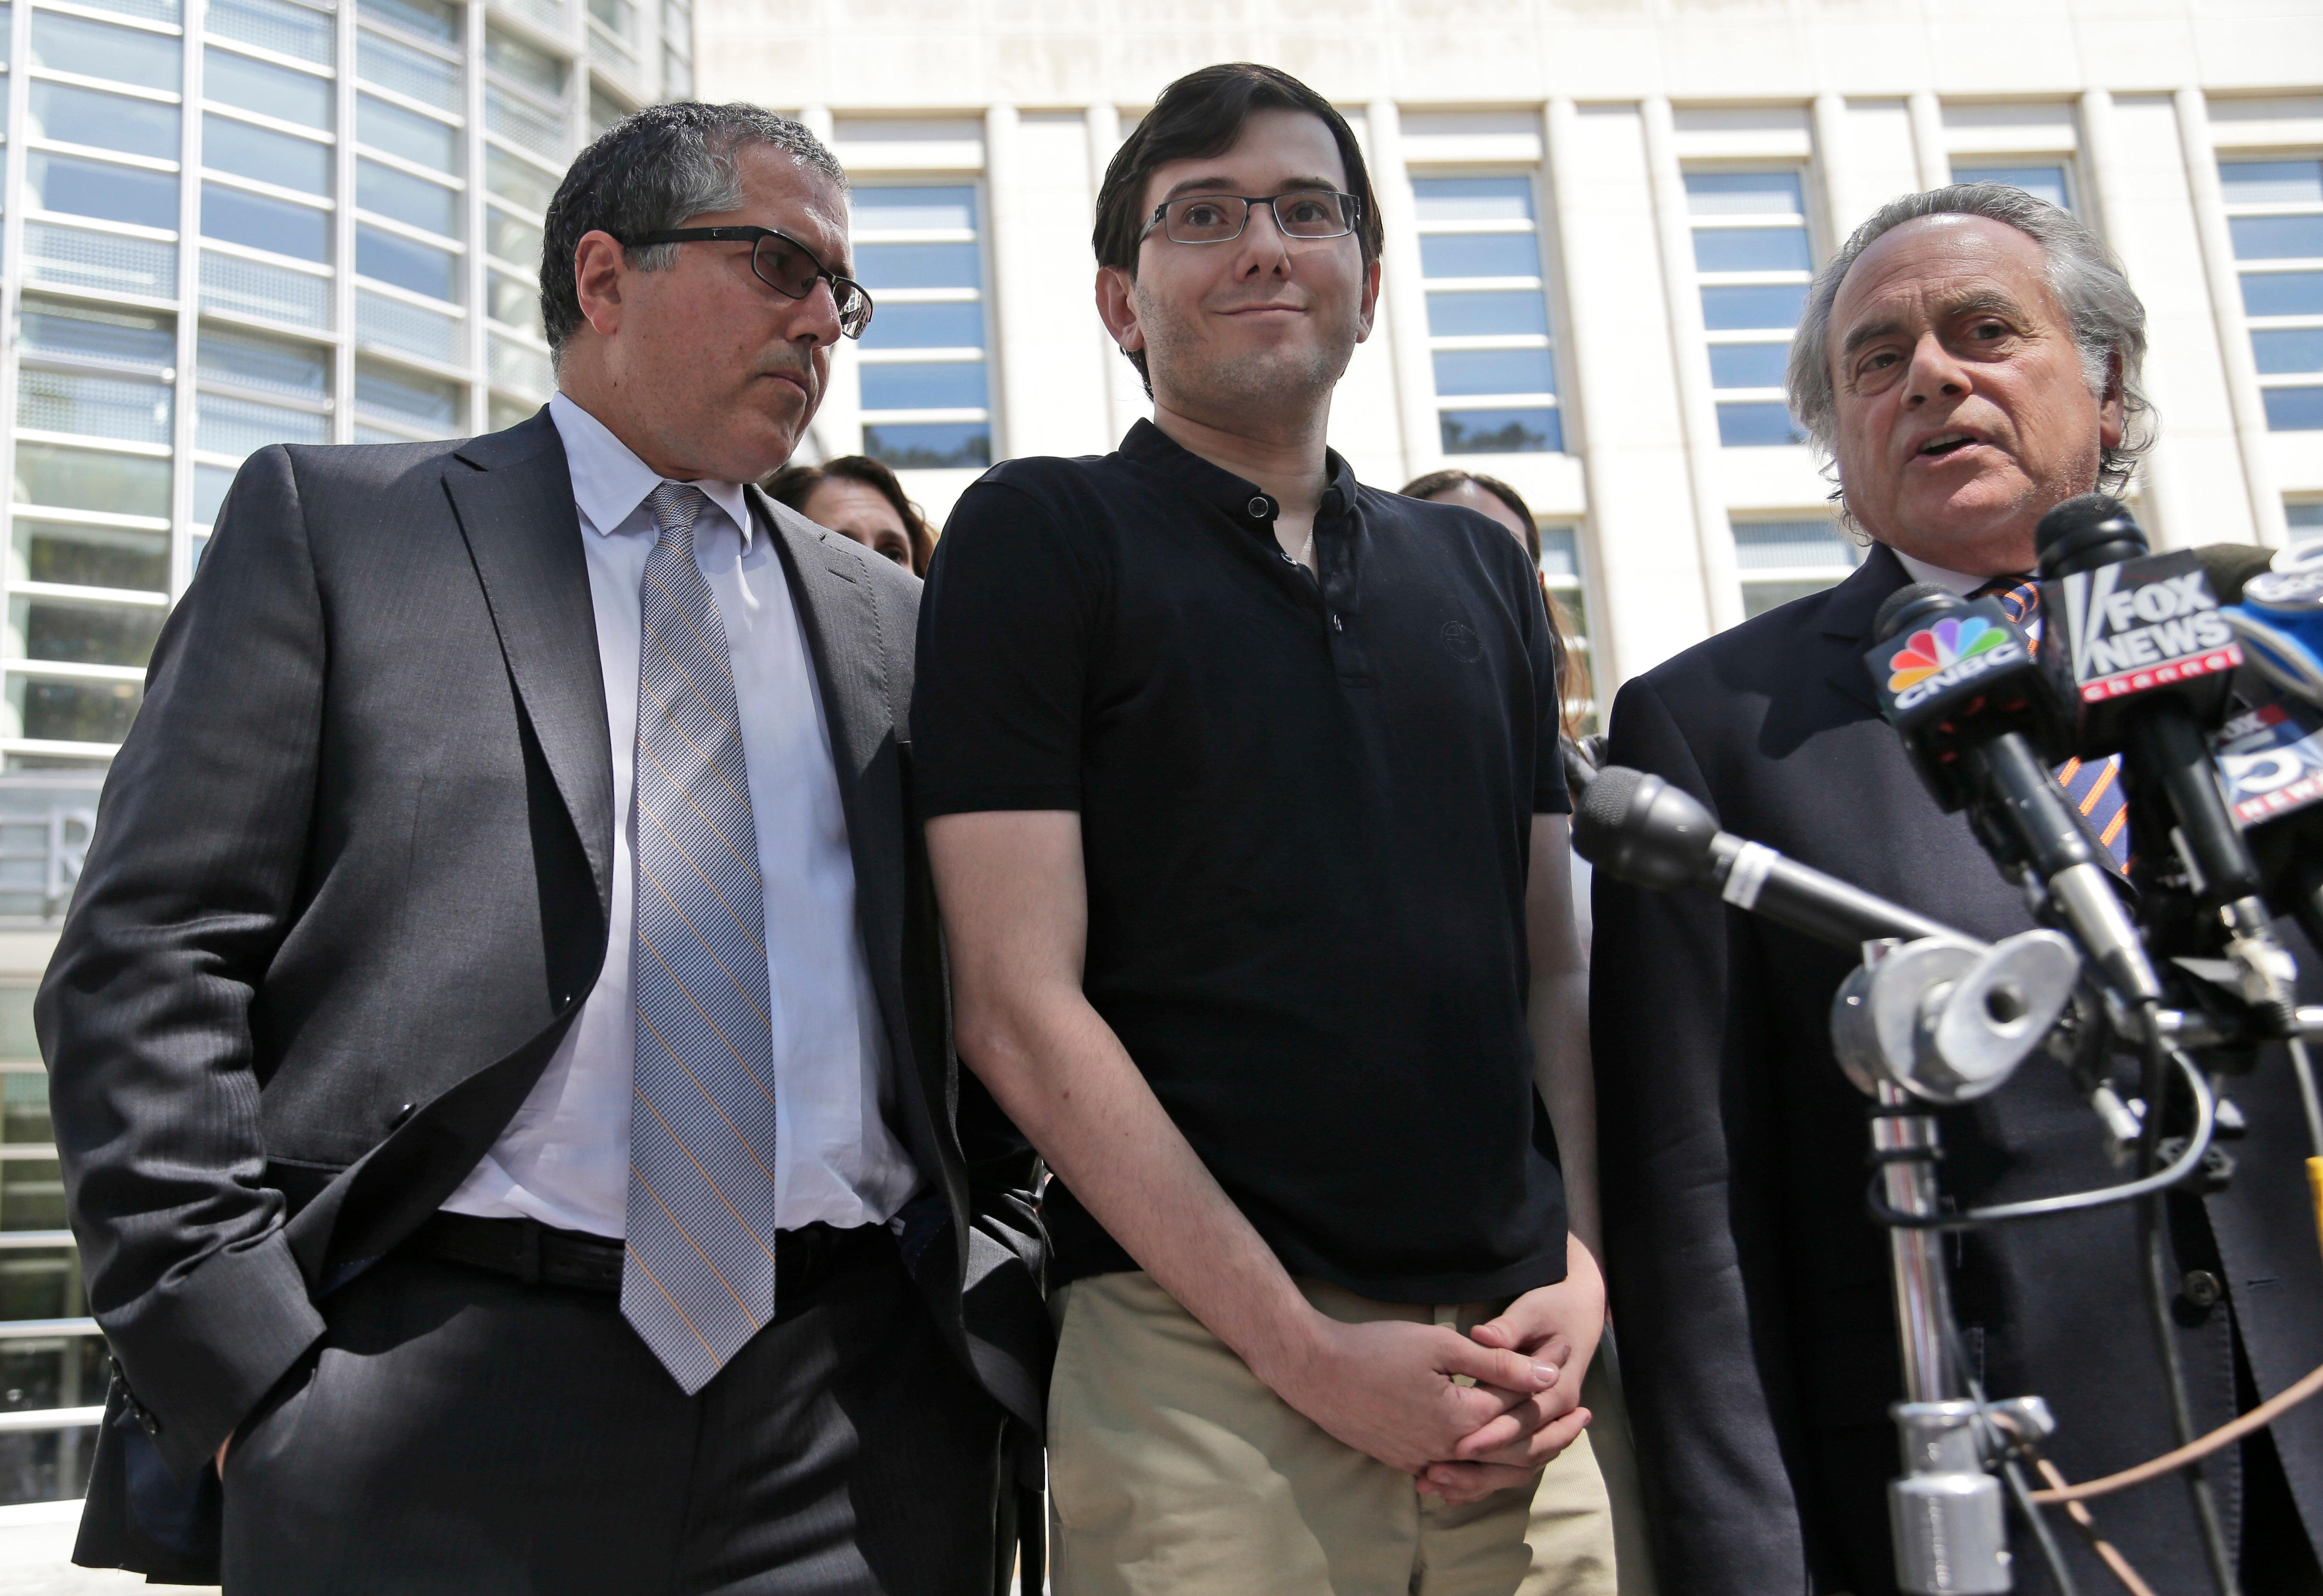 Martin Shkreli, center, stops with his attorneys to talk to reporters in front of federal court in New York, Friday, Aug. 4, 2017. The former pharmaceutical CEO has been convicted on federal charges he deceived investors in a pair of failed hedge funds. A Brooklyn jury deliberated five days before finding Shkreli guilty on Friday on three of eight counts. (AP Photo/Seth Wenig)